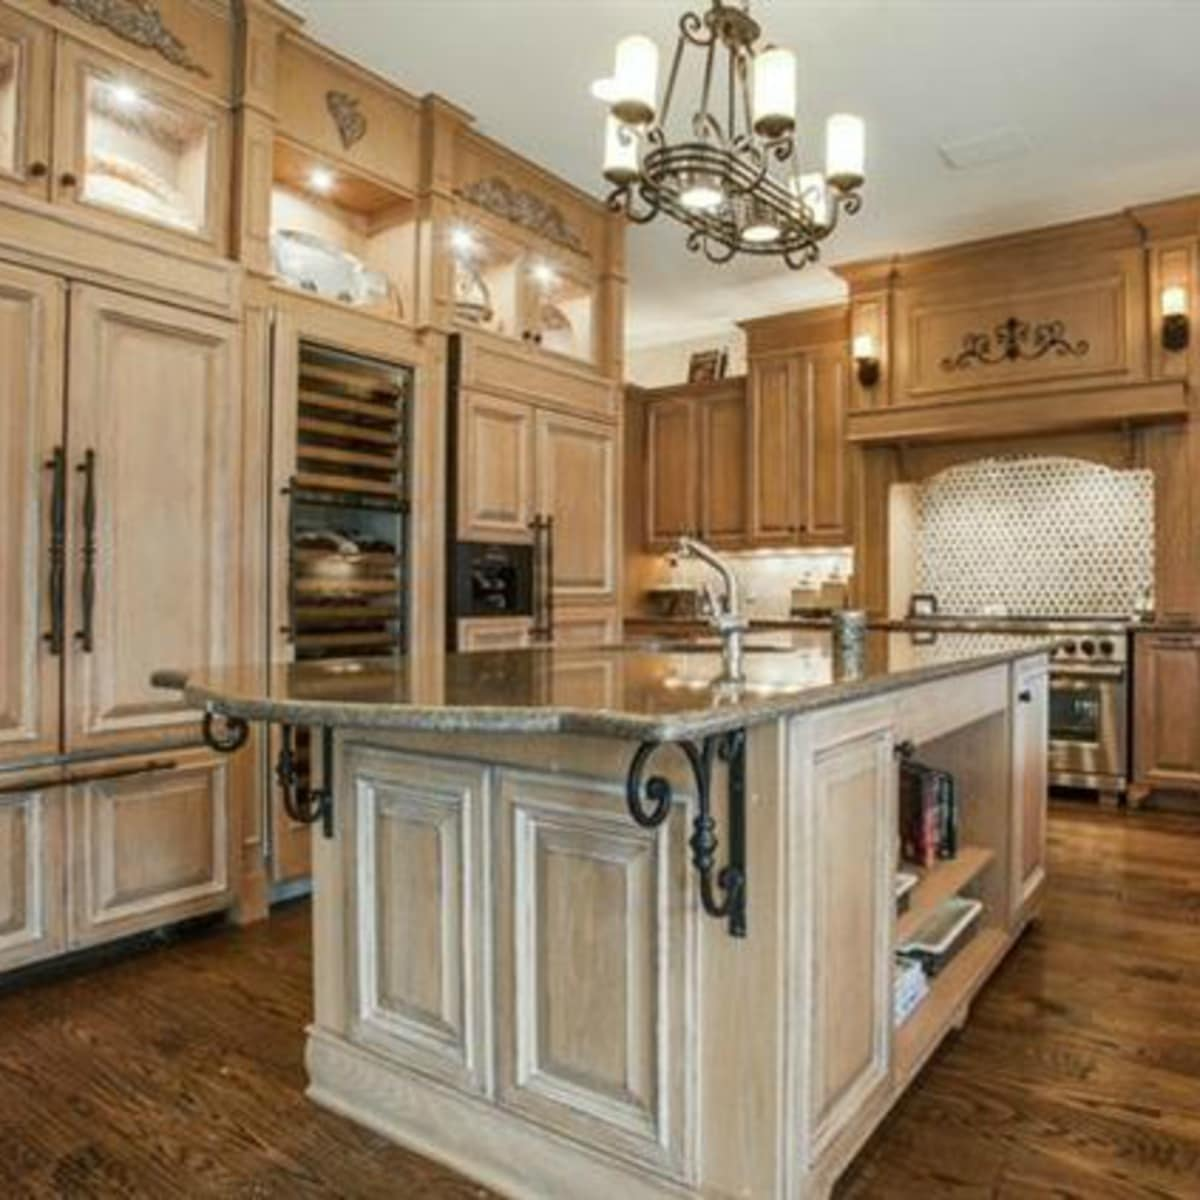 6047 Woodland Dr. house for sale in Dallas